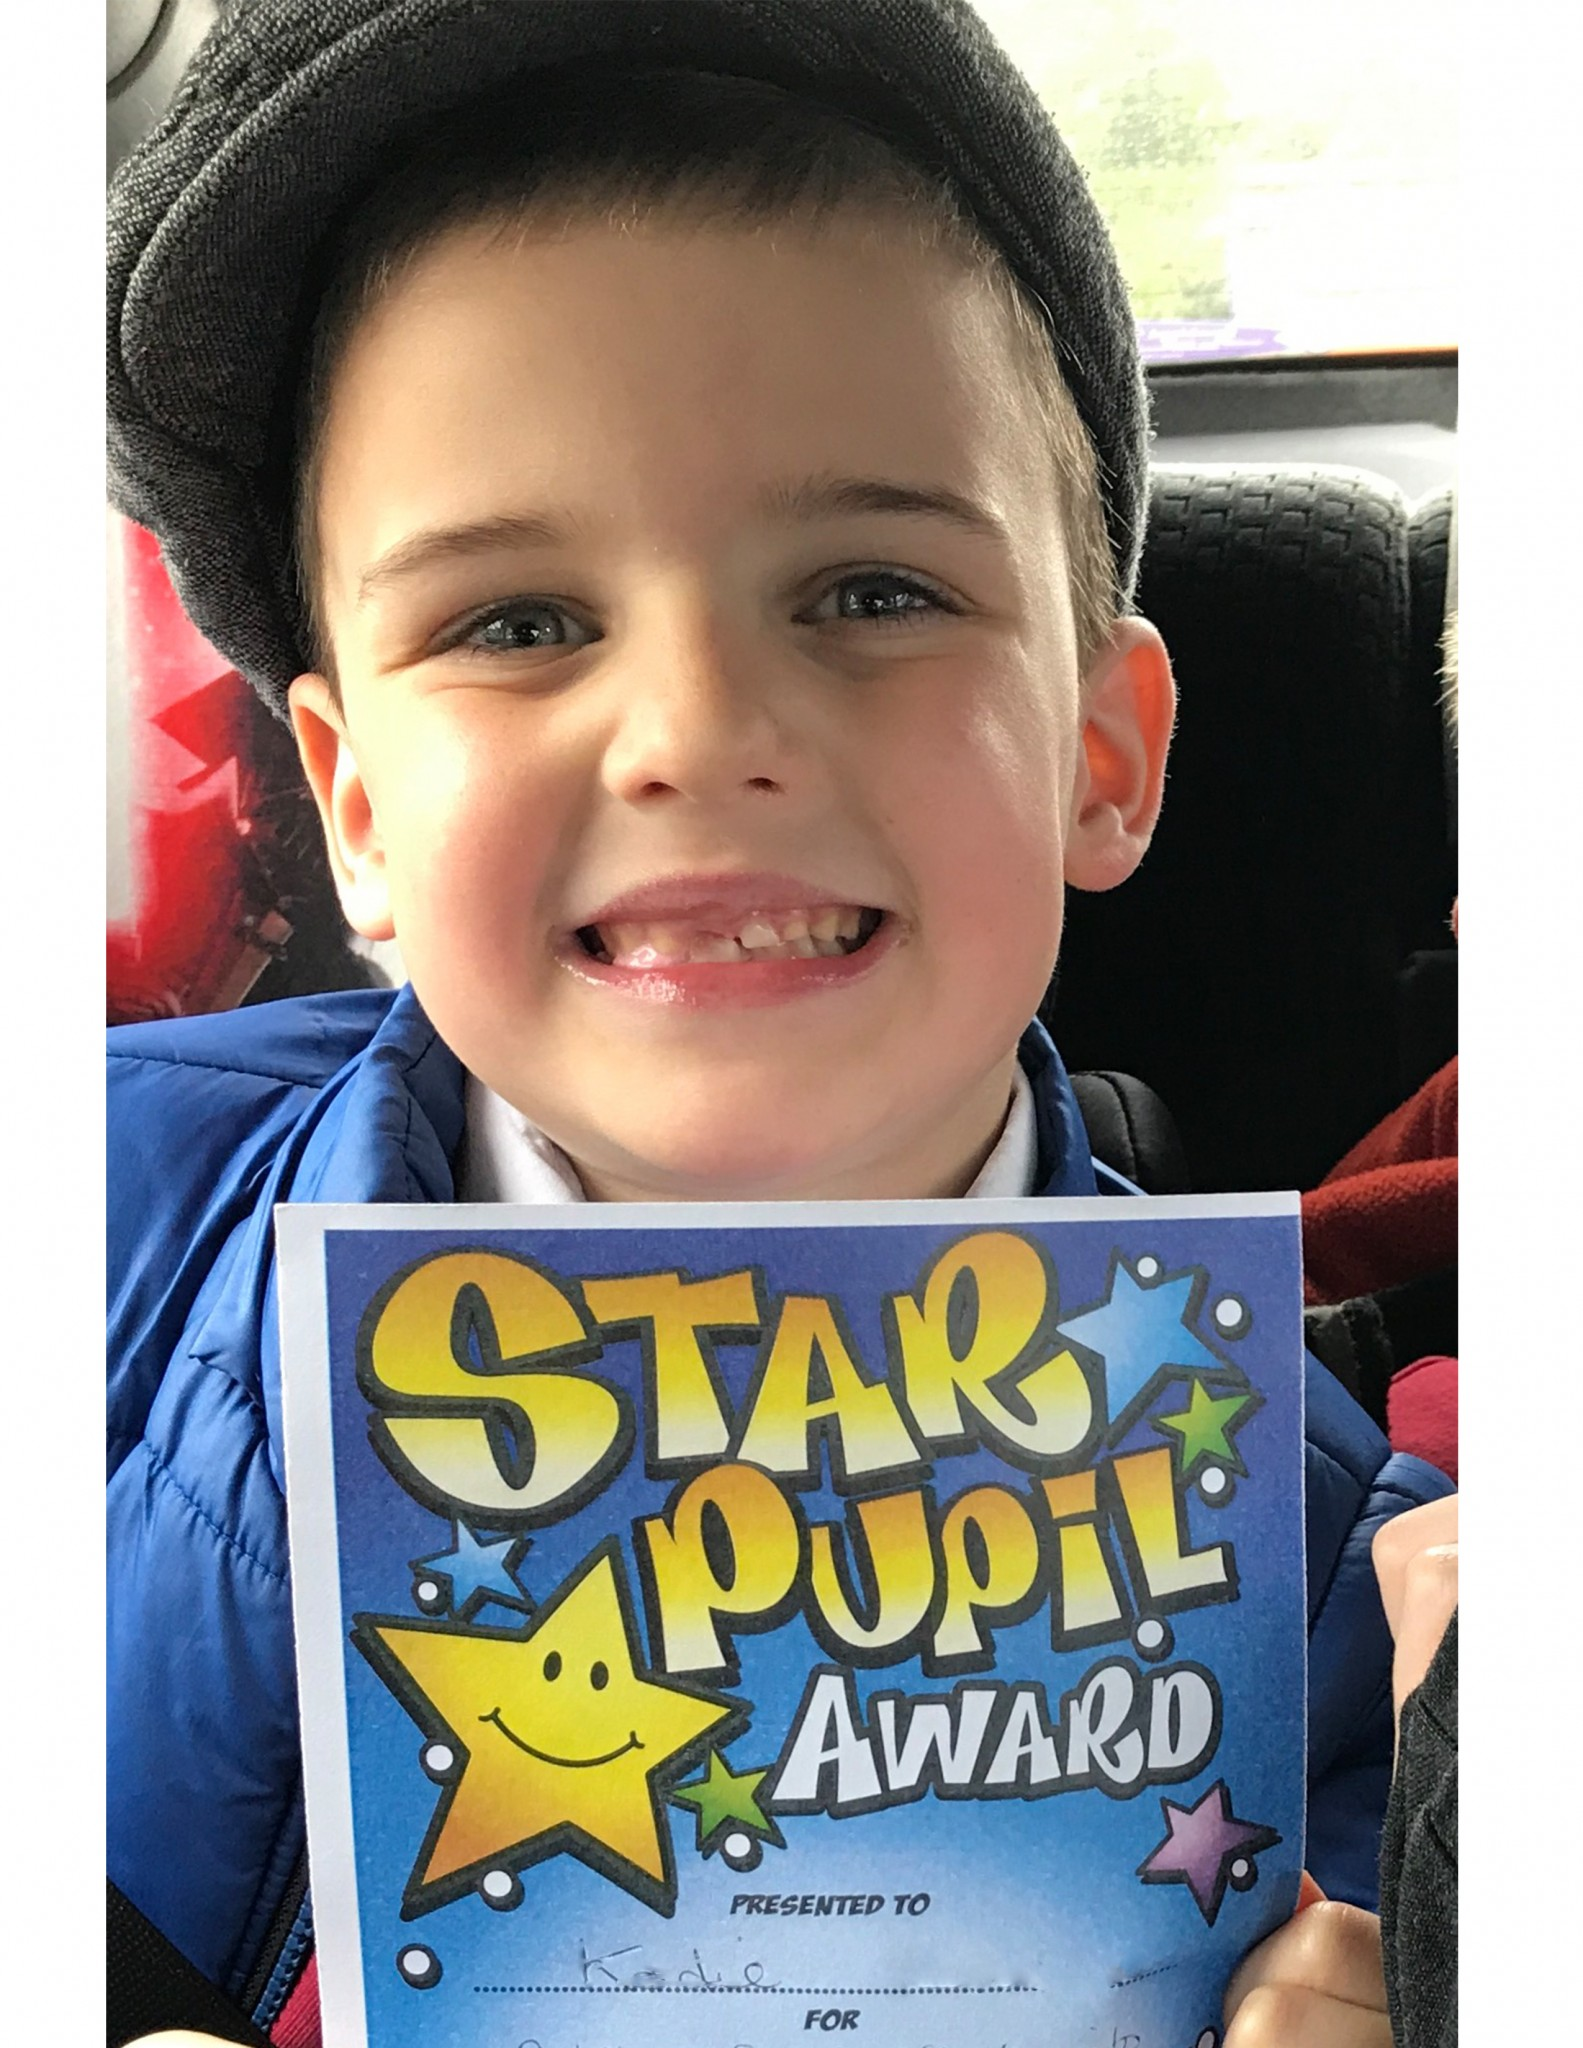 Kodie holding a star pupil award